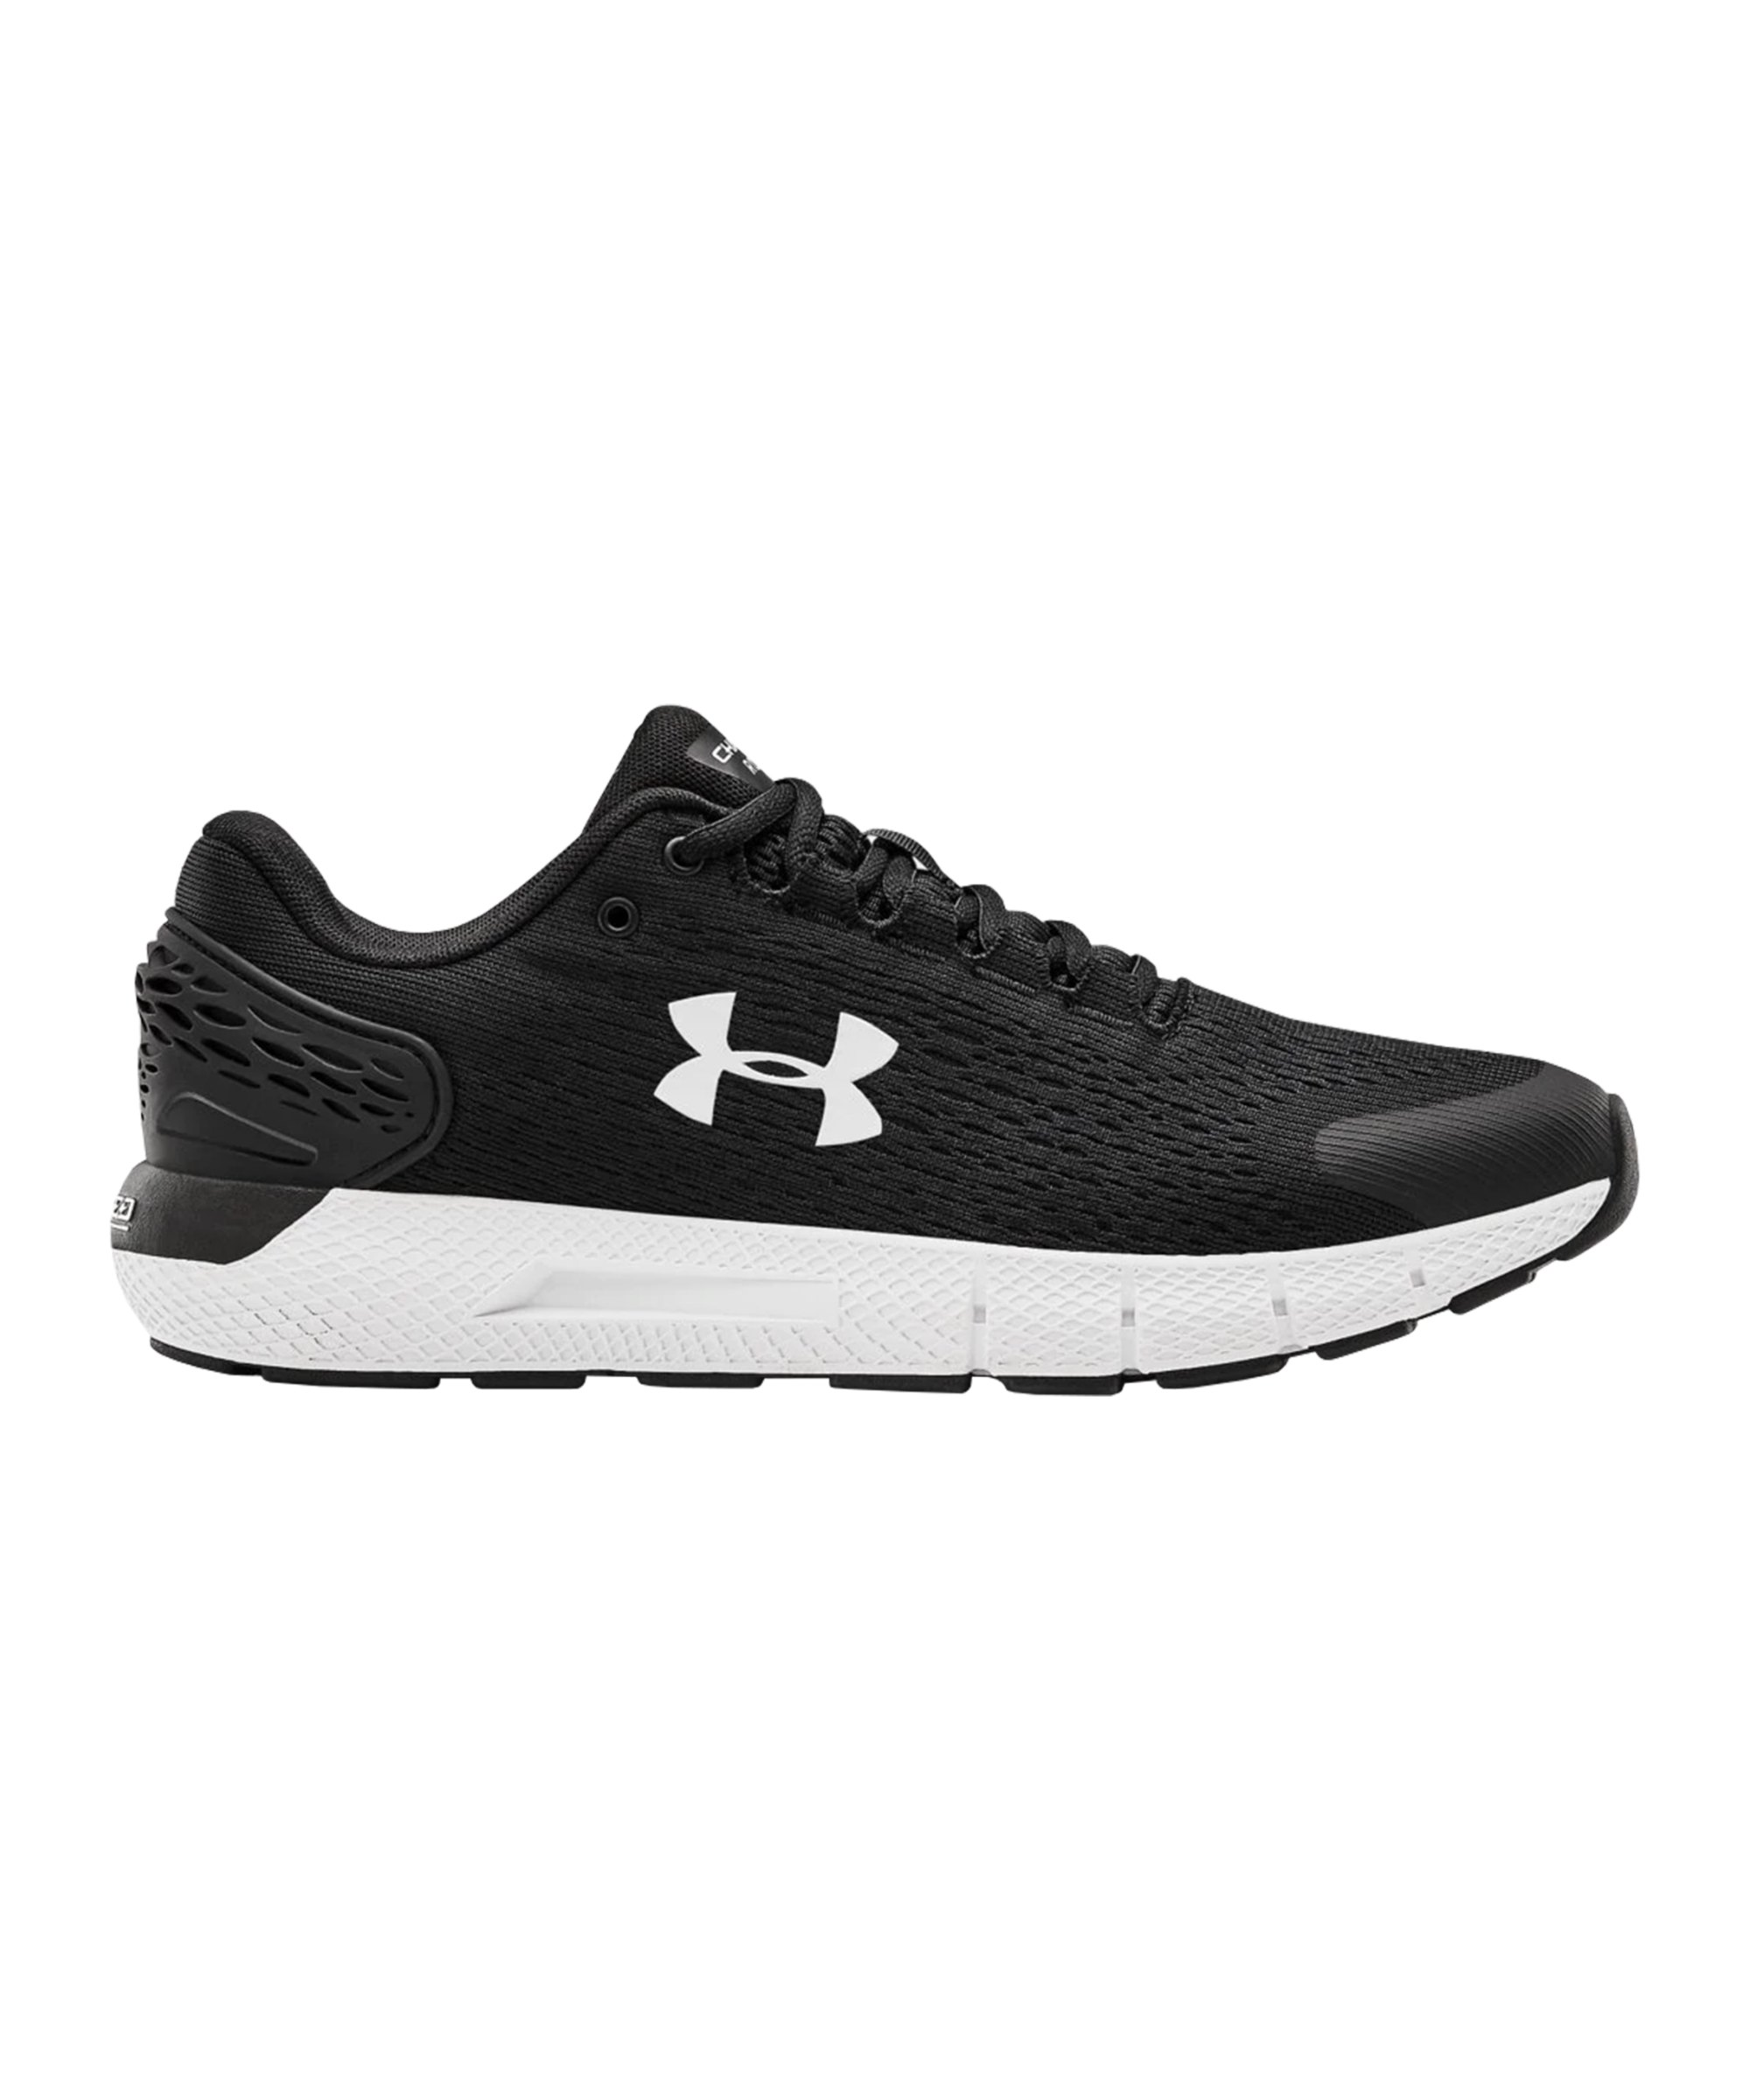 Under Armour Charged Rogue 2 Running F004 - schwarz